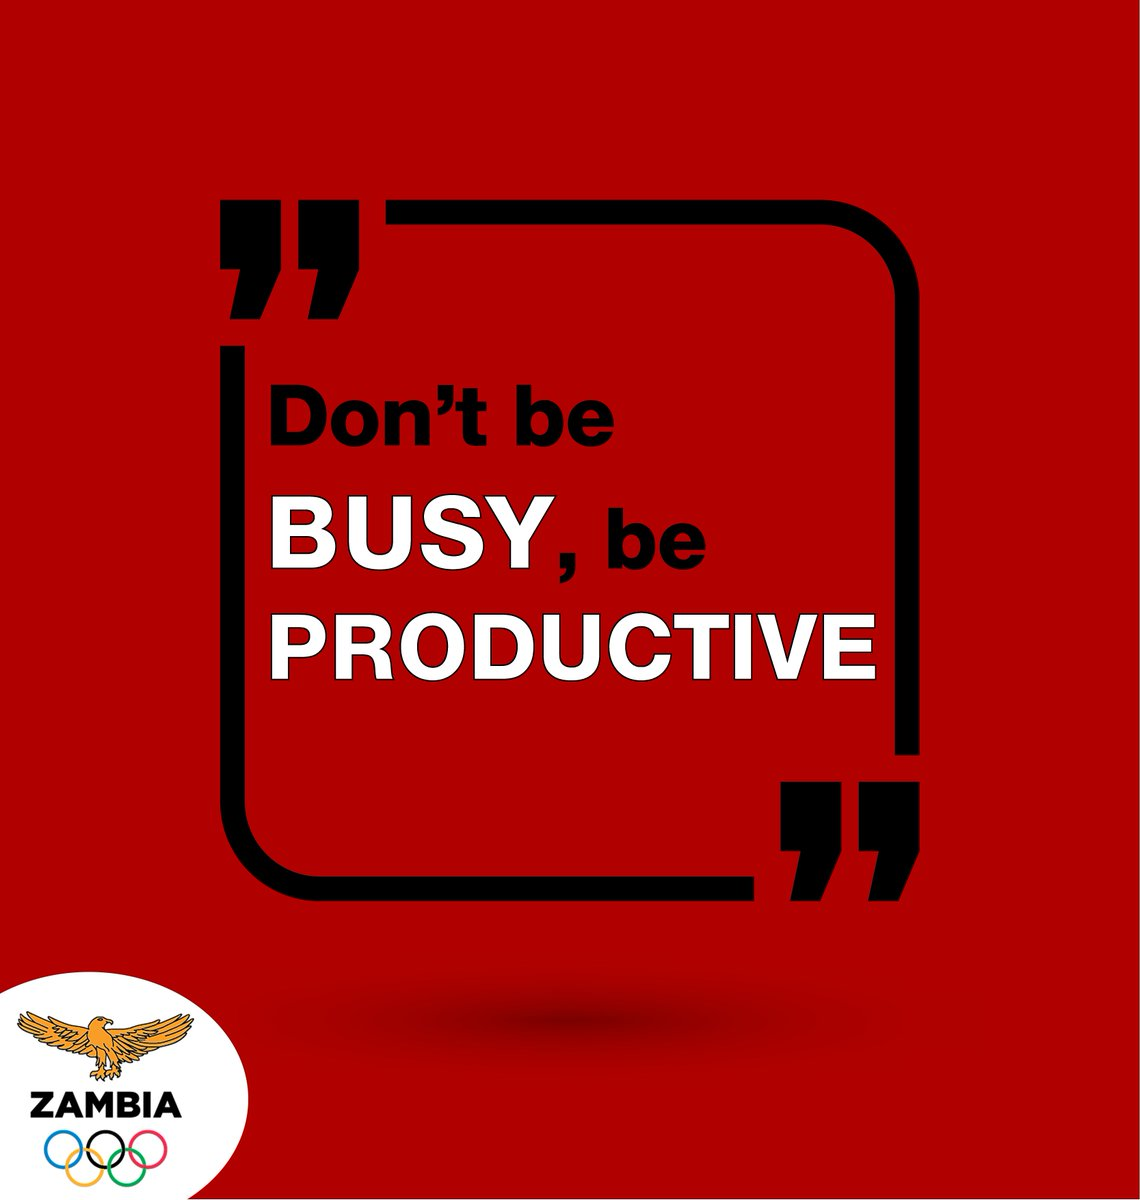 #MondayMotivaton  For this week, we encourage you not to be busy but productive in whatever you are doing. https://t.co/rh7iWBfqfx